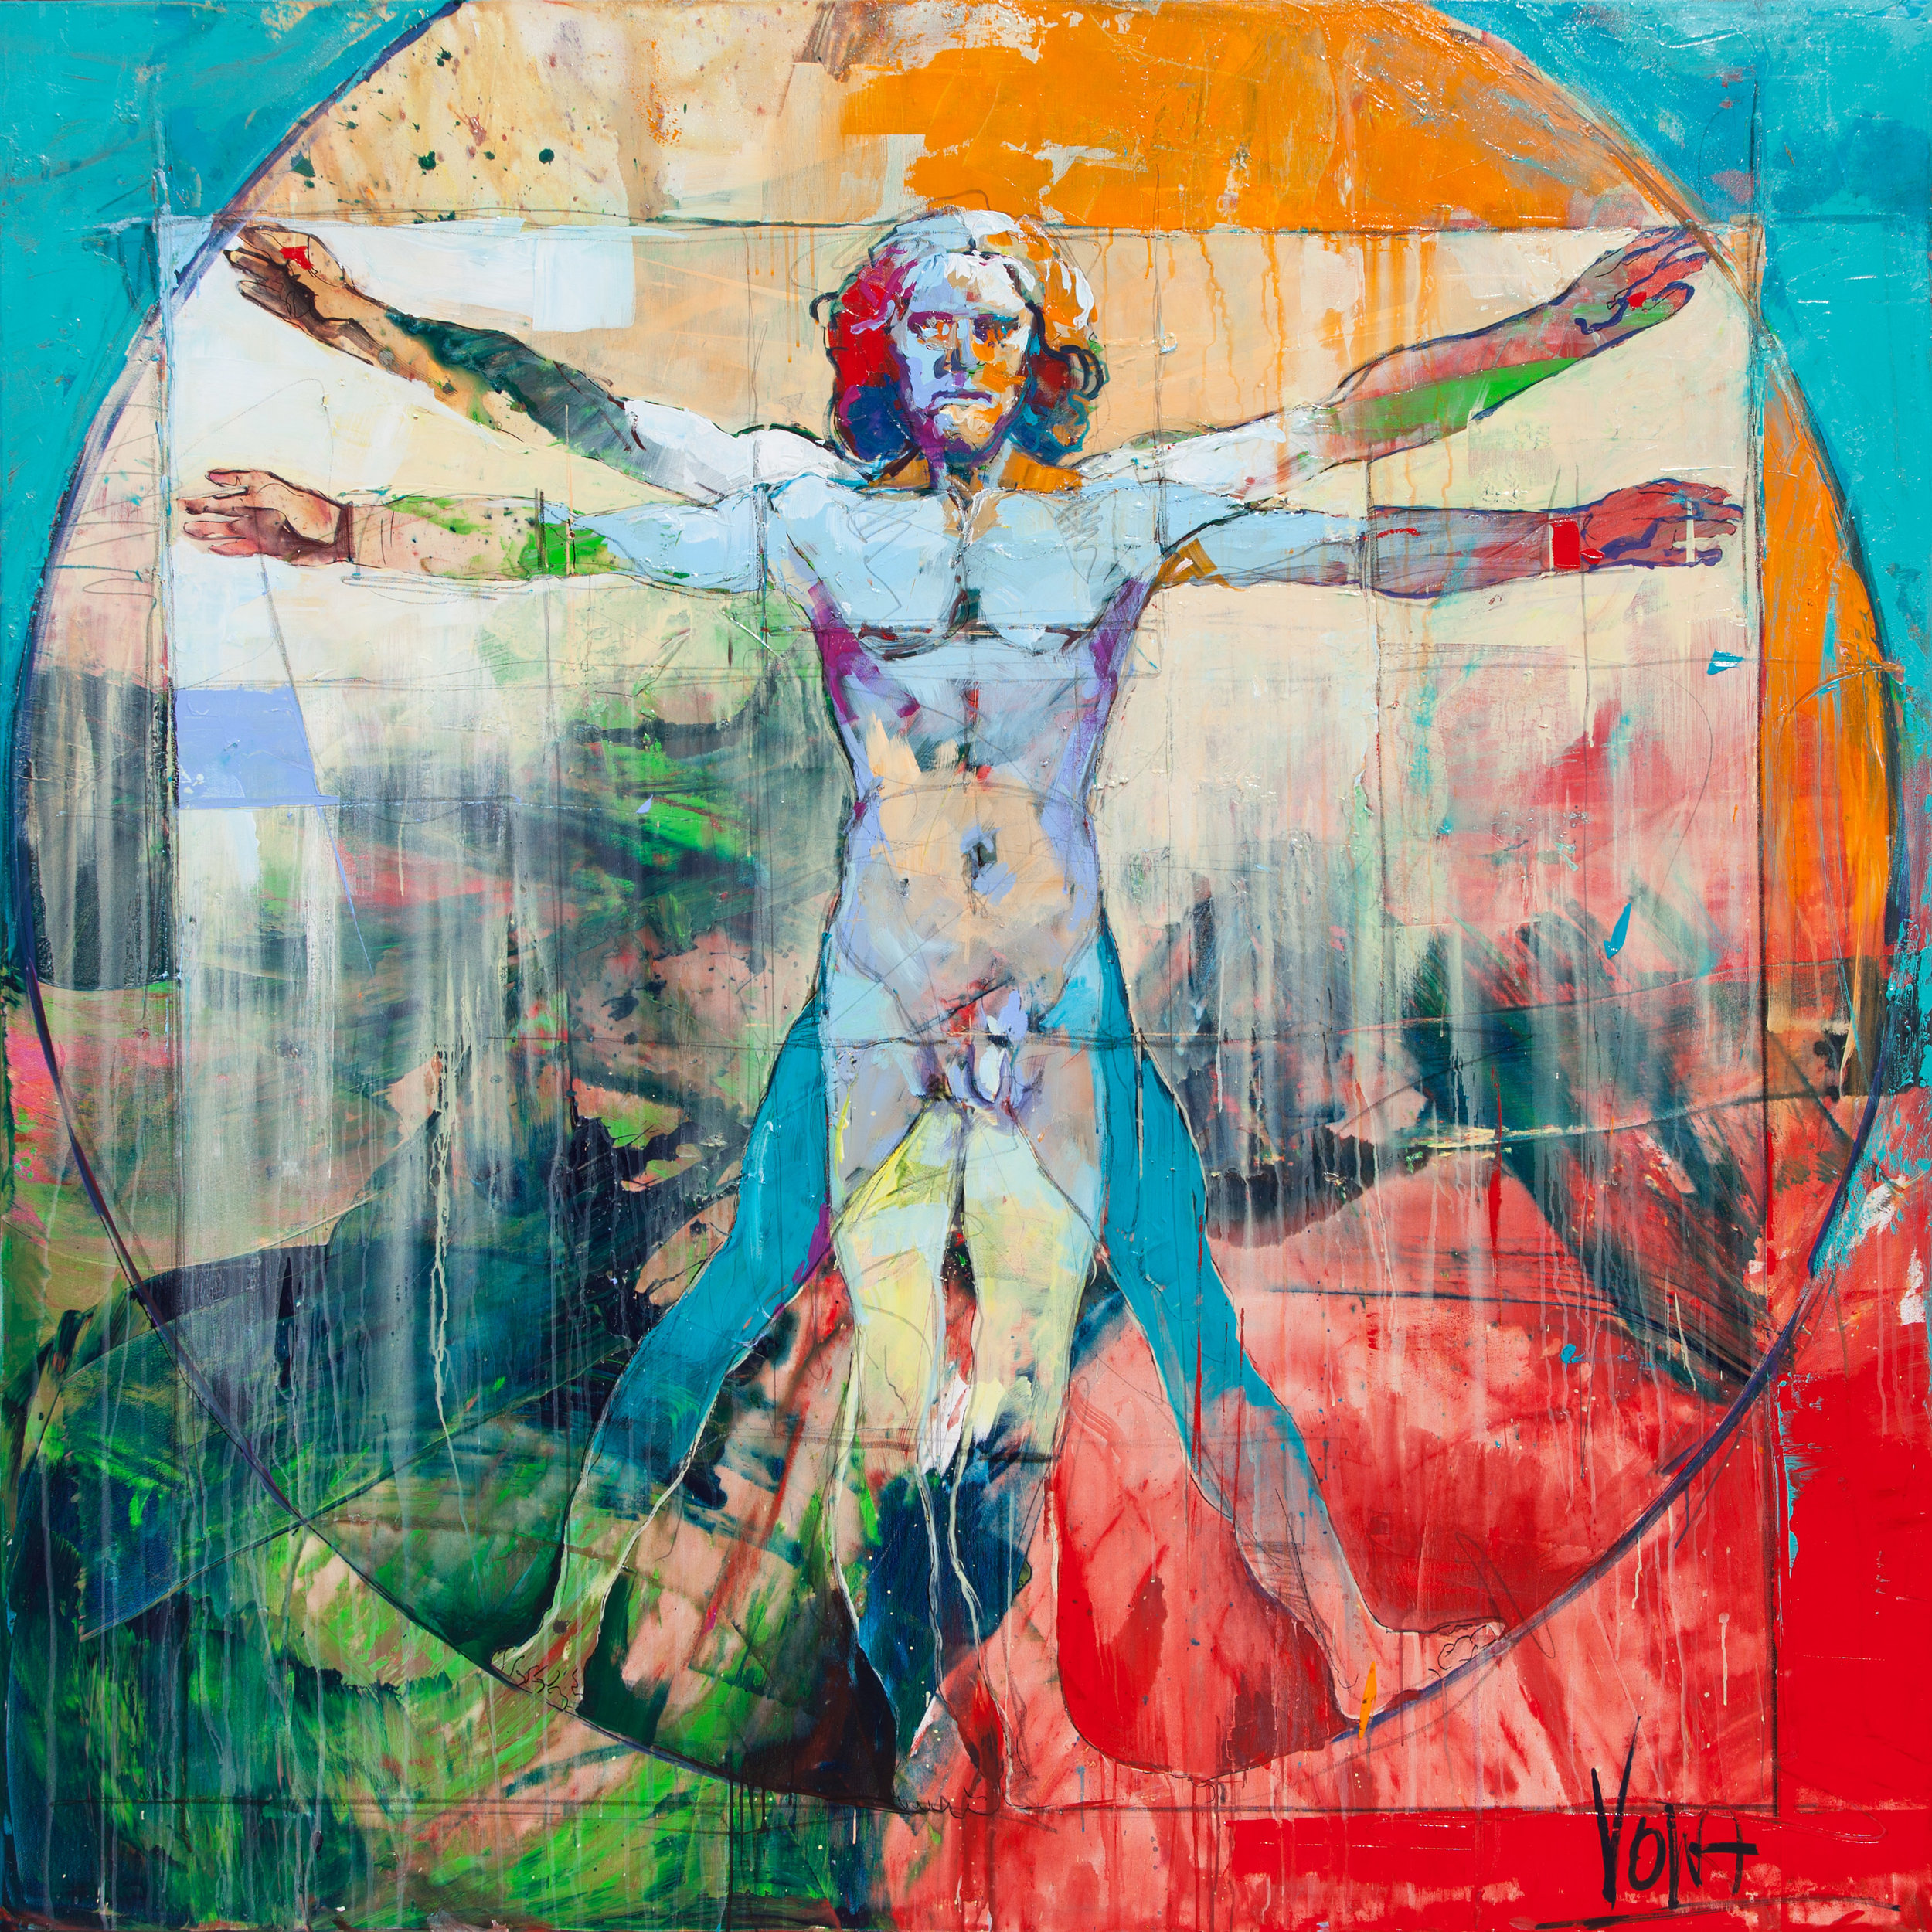 The Vitruvian Man, 190X190cm / 74,8X74,8 inch, Acrylic on Canvas